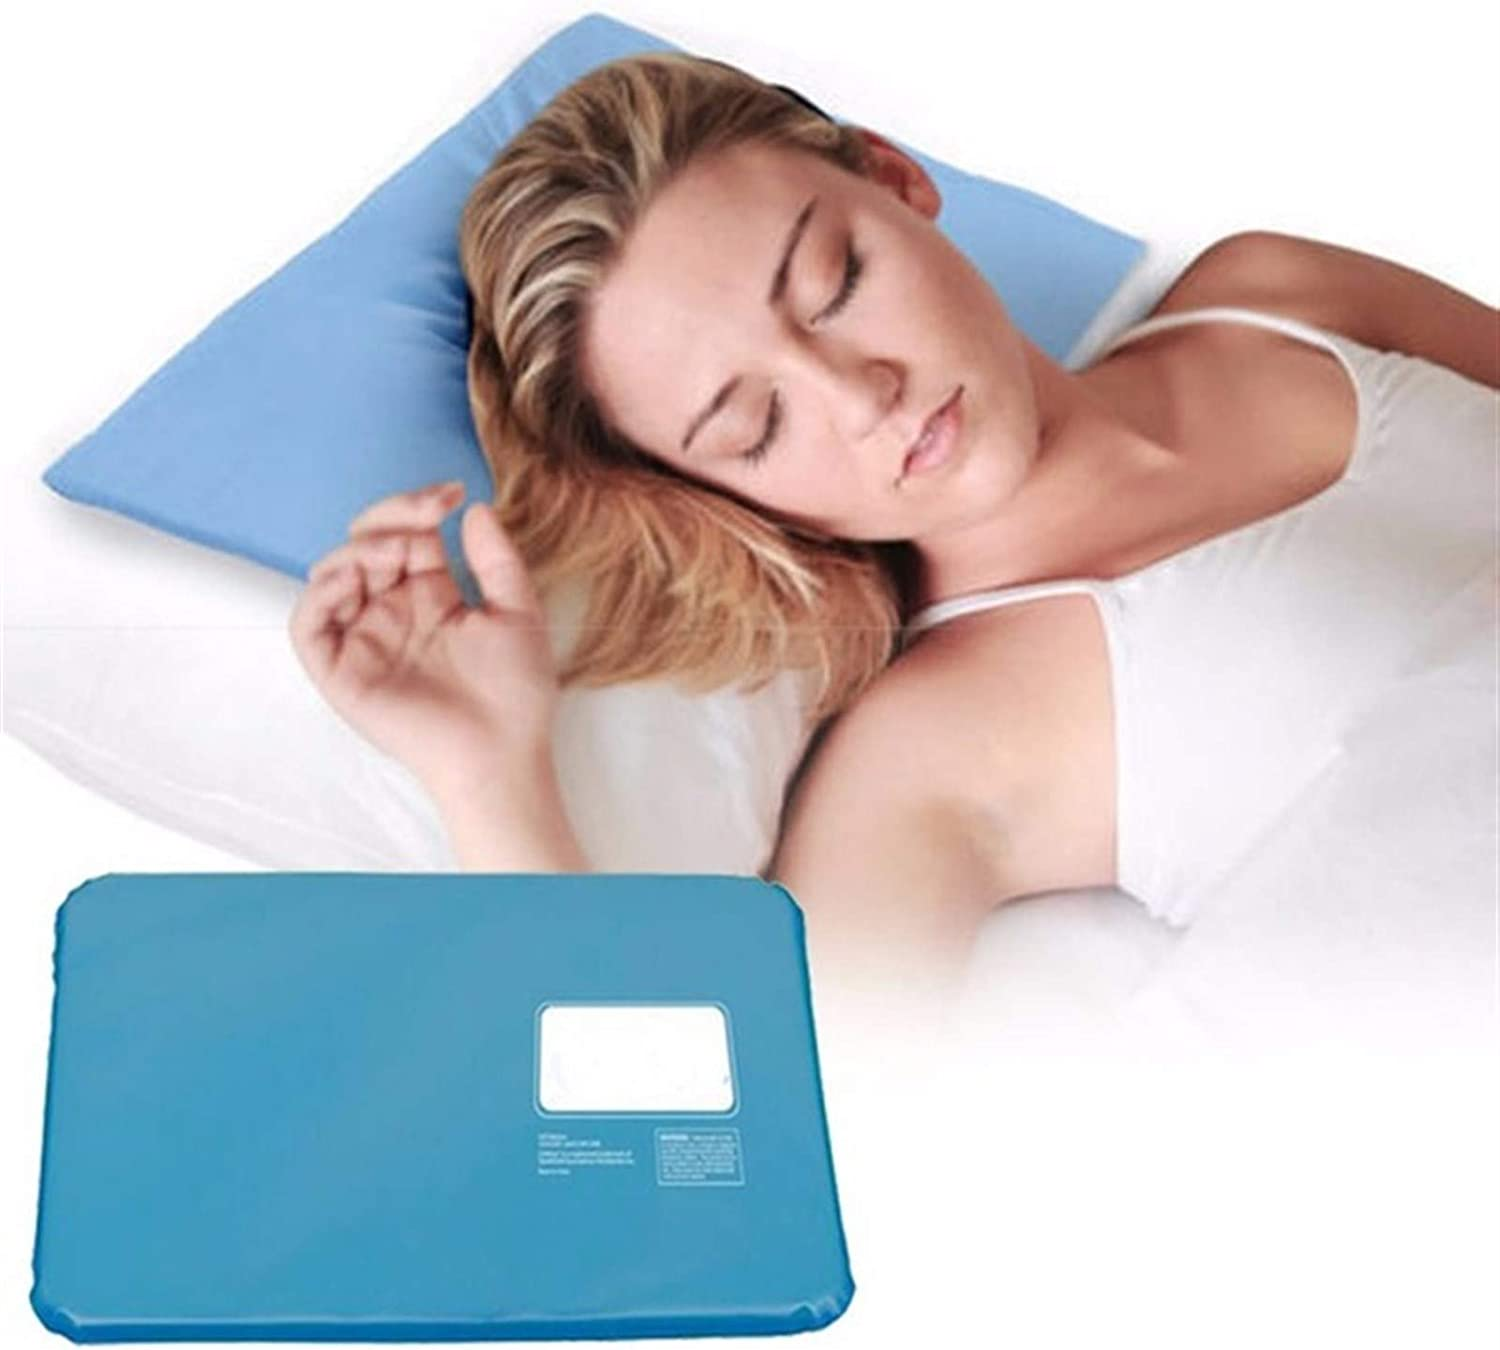 Summer Ice Pad Massager Therapy Sleeping Aid Insert Chillow Pad Mat Muscle Relief Cooling Gel Pillow